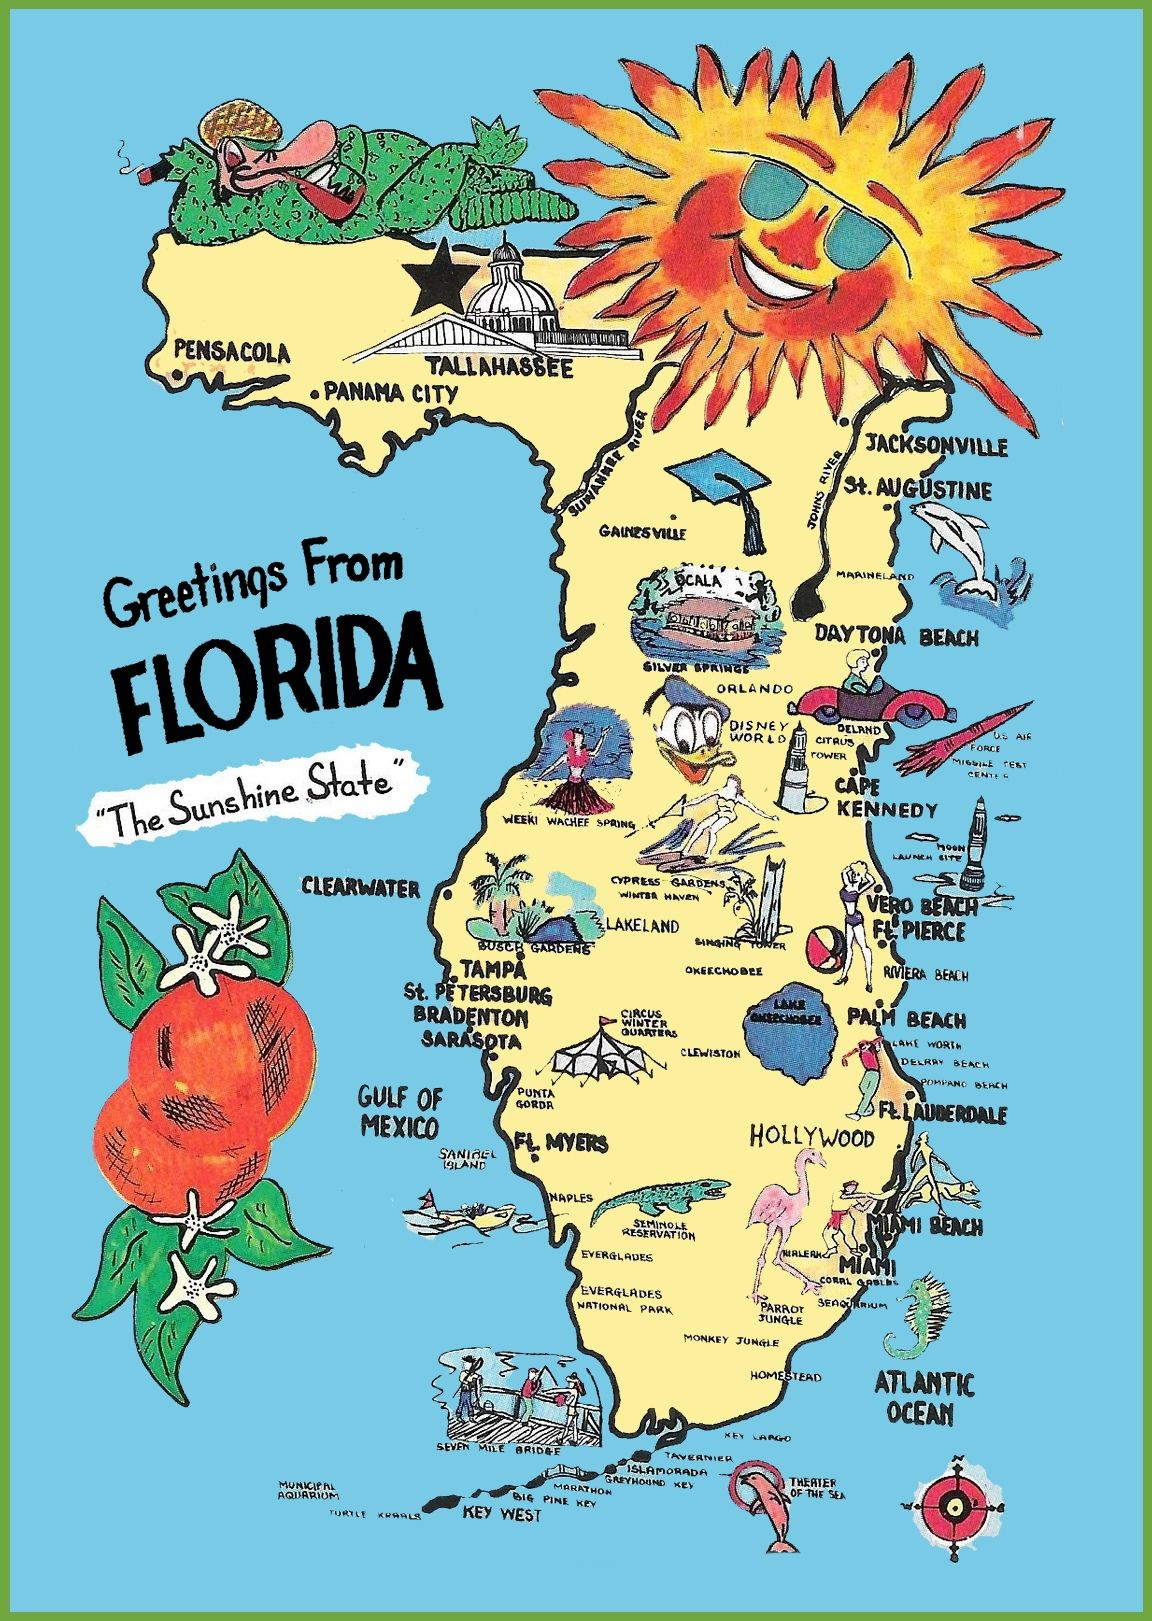 Map Of America Hollywood.Pictorial Travel Map Of Florida Florida Travel Maps Map Florida